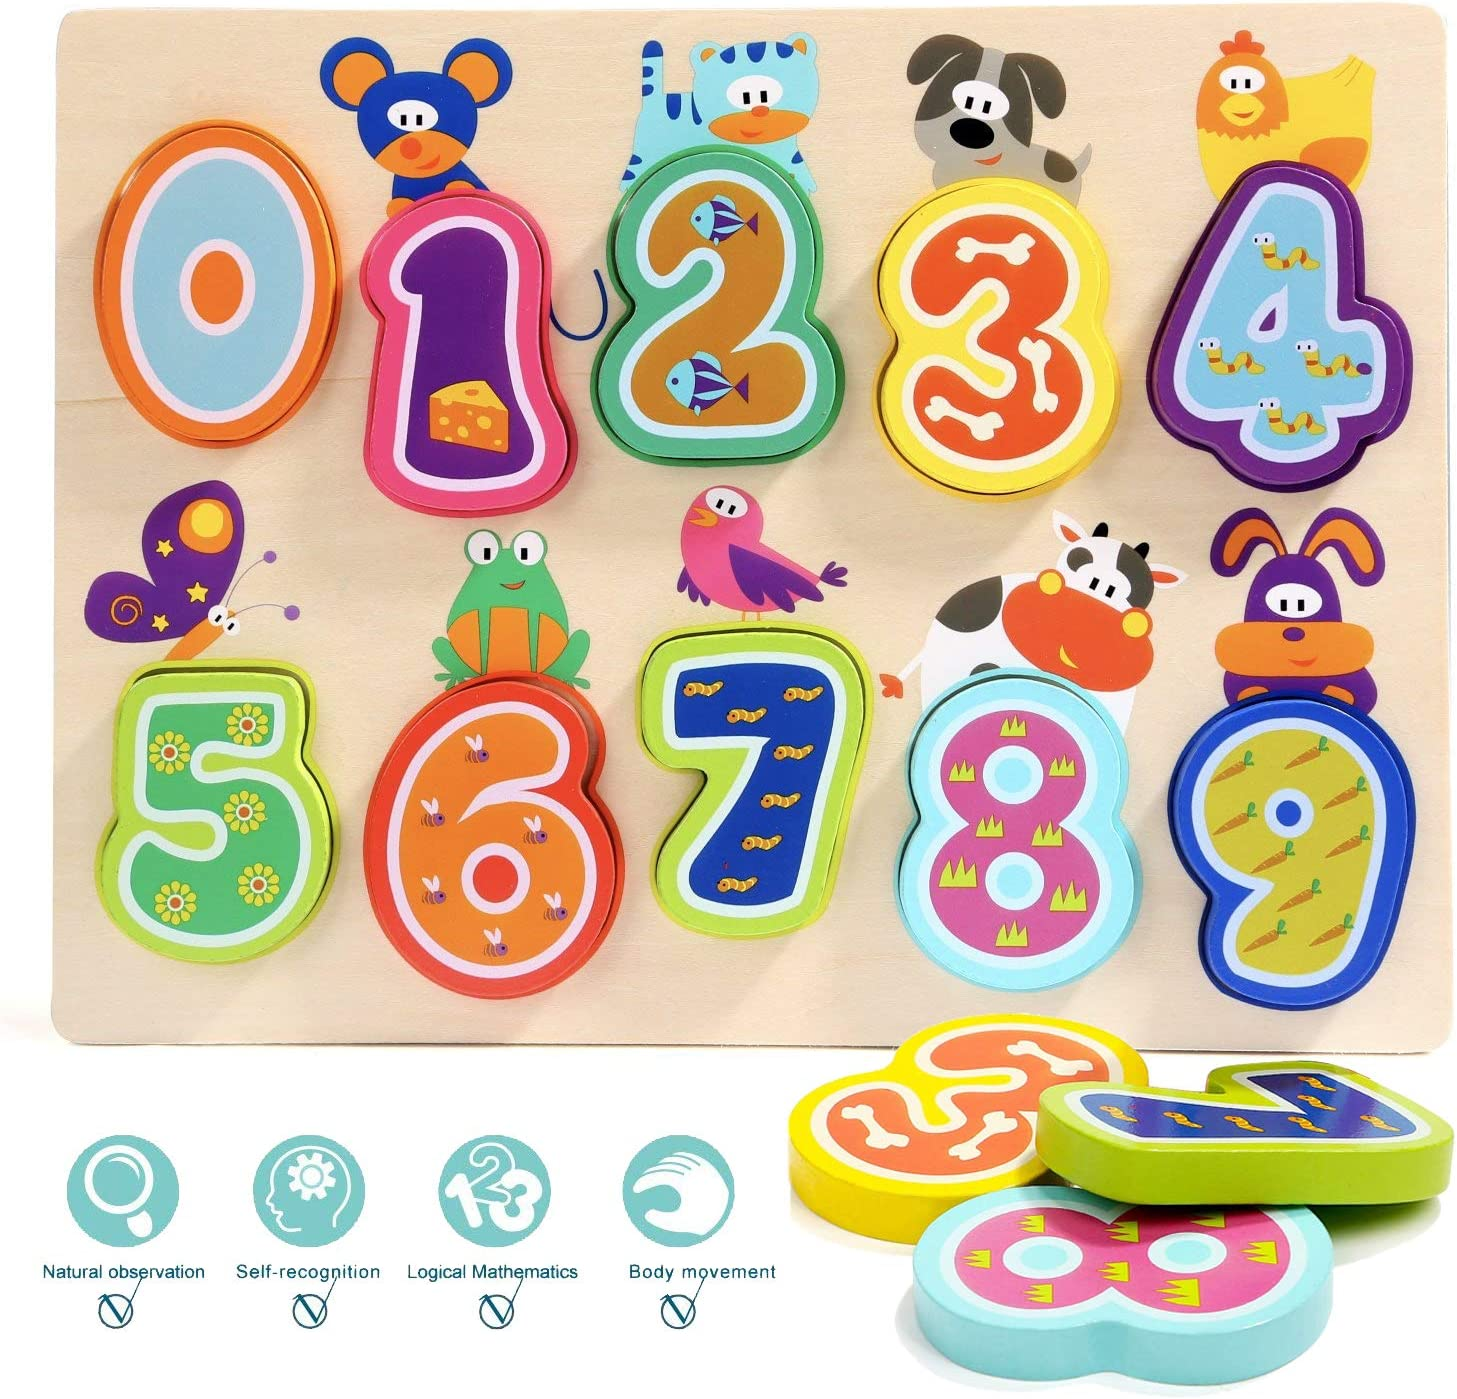 Gifts For 1 Year Old.Amazon Com Top Bright Puzzles Toys For 1 Year Old Girl Boy Gifts And One Year Old Girl Boy Toys For Toddlers Toys Games